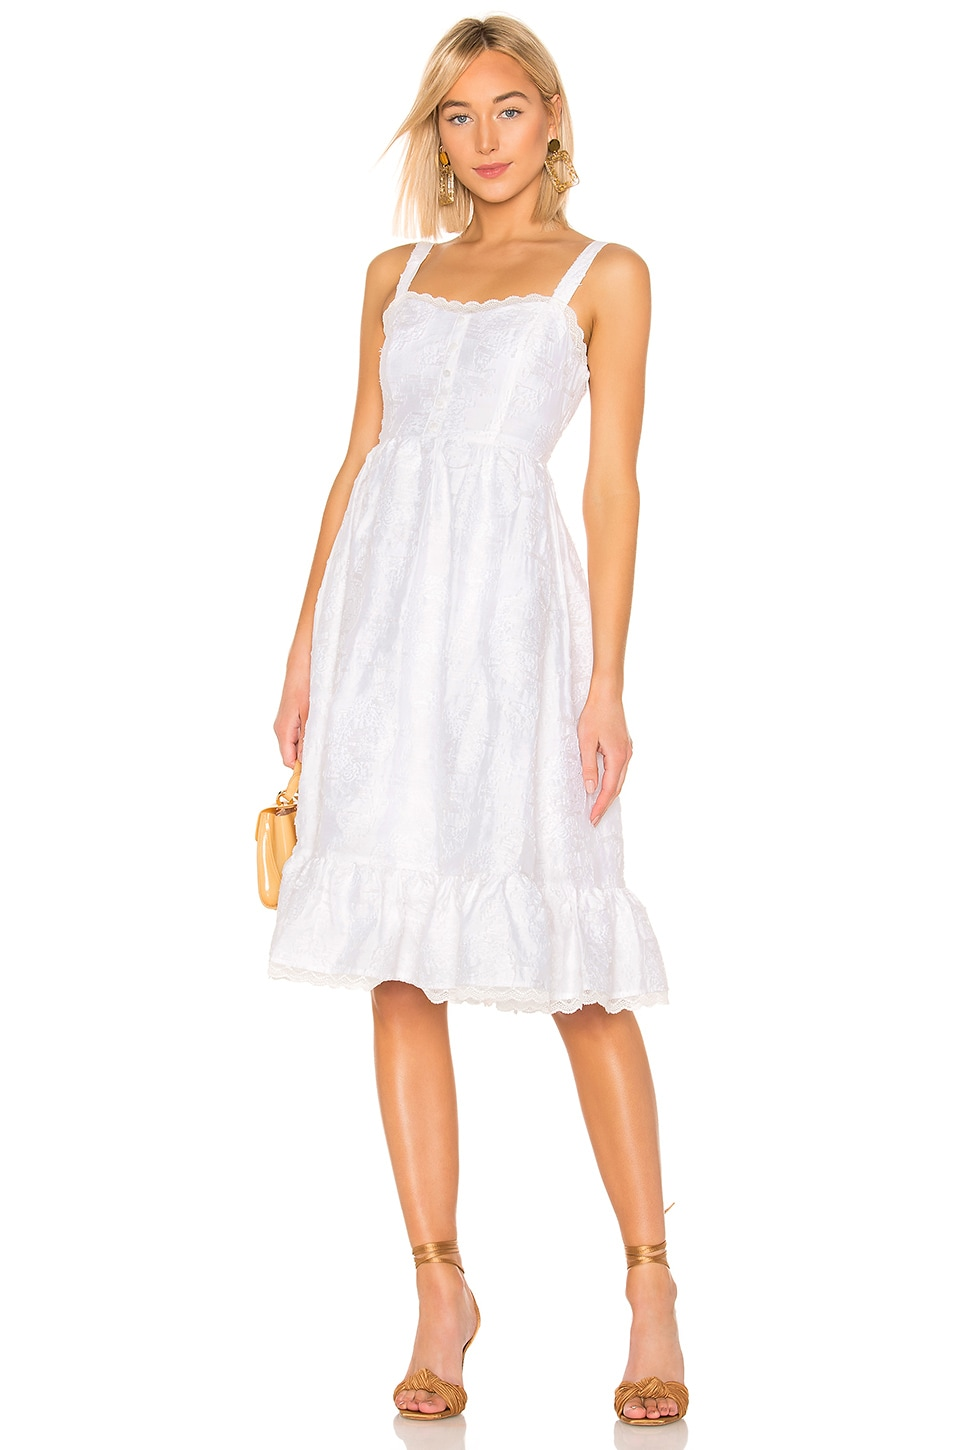 House of Harlow 1960 x REVOLVE Citra Dress in Ivory